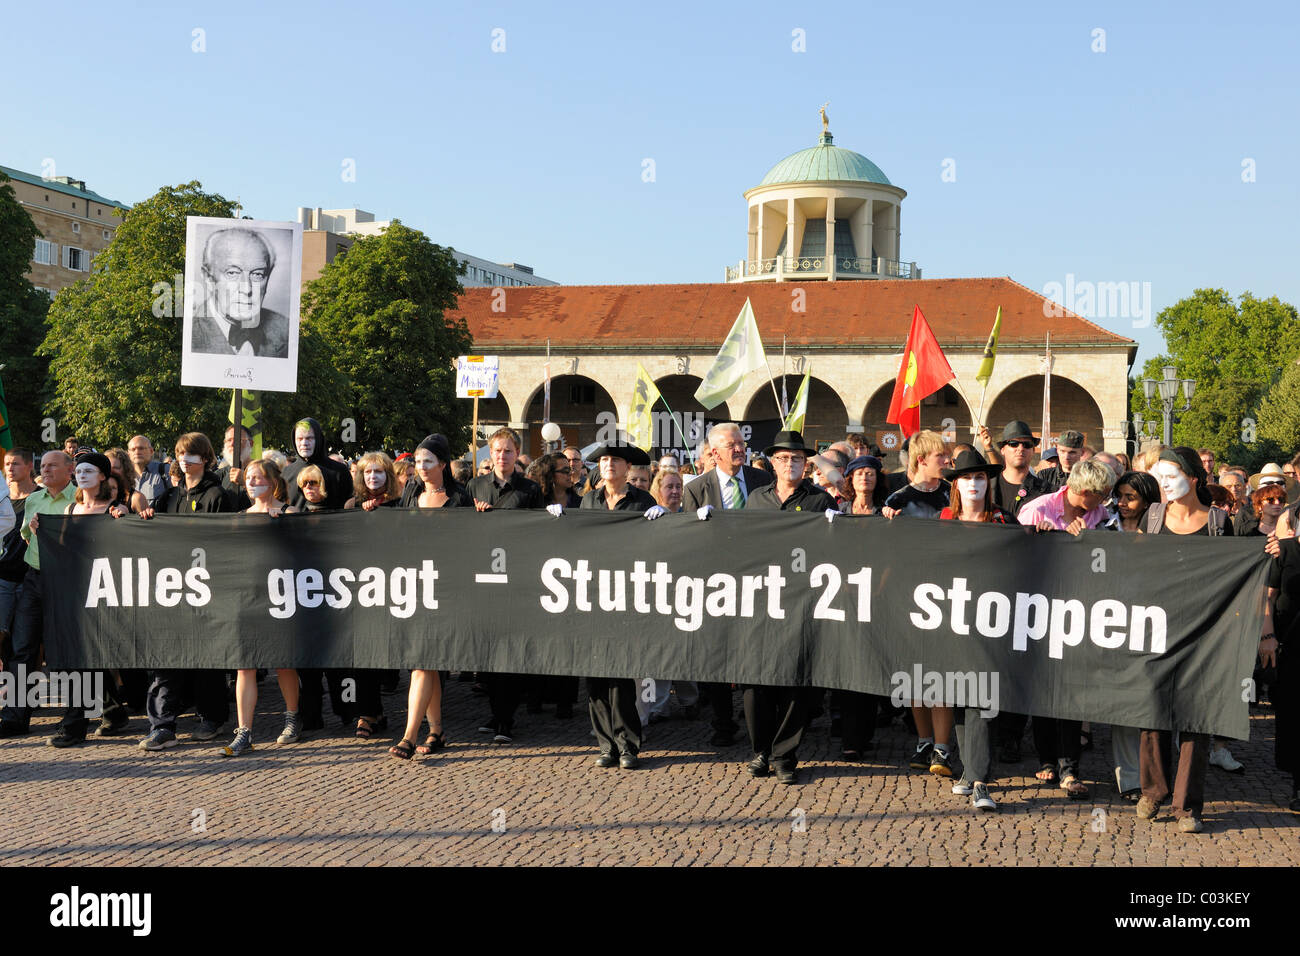 Silent protest march of Stuttgart 21 opponents on the Schlossplatz square against the rebuilding of the railway - Stock Image